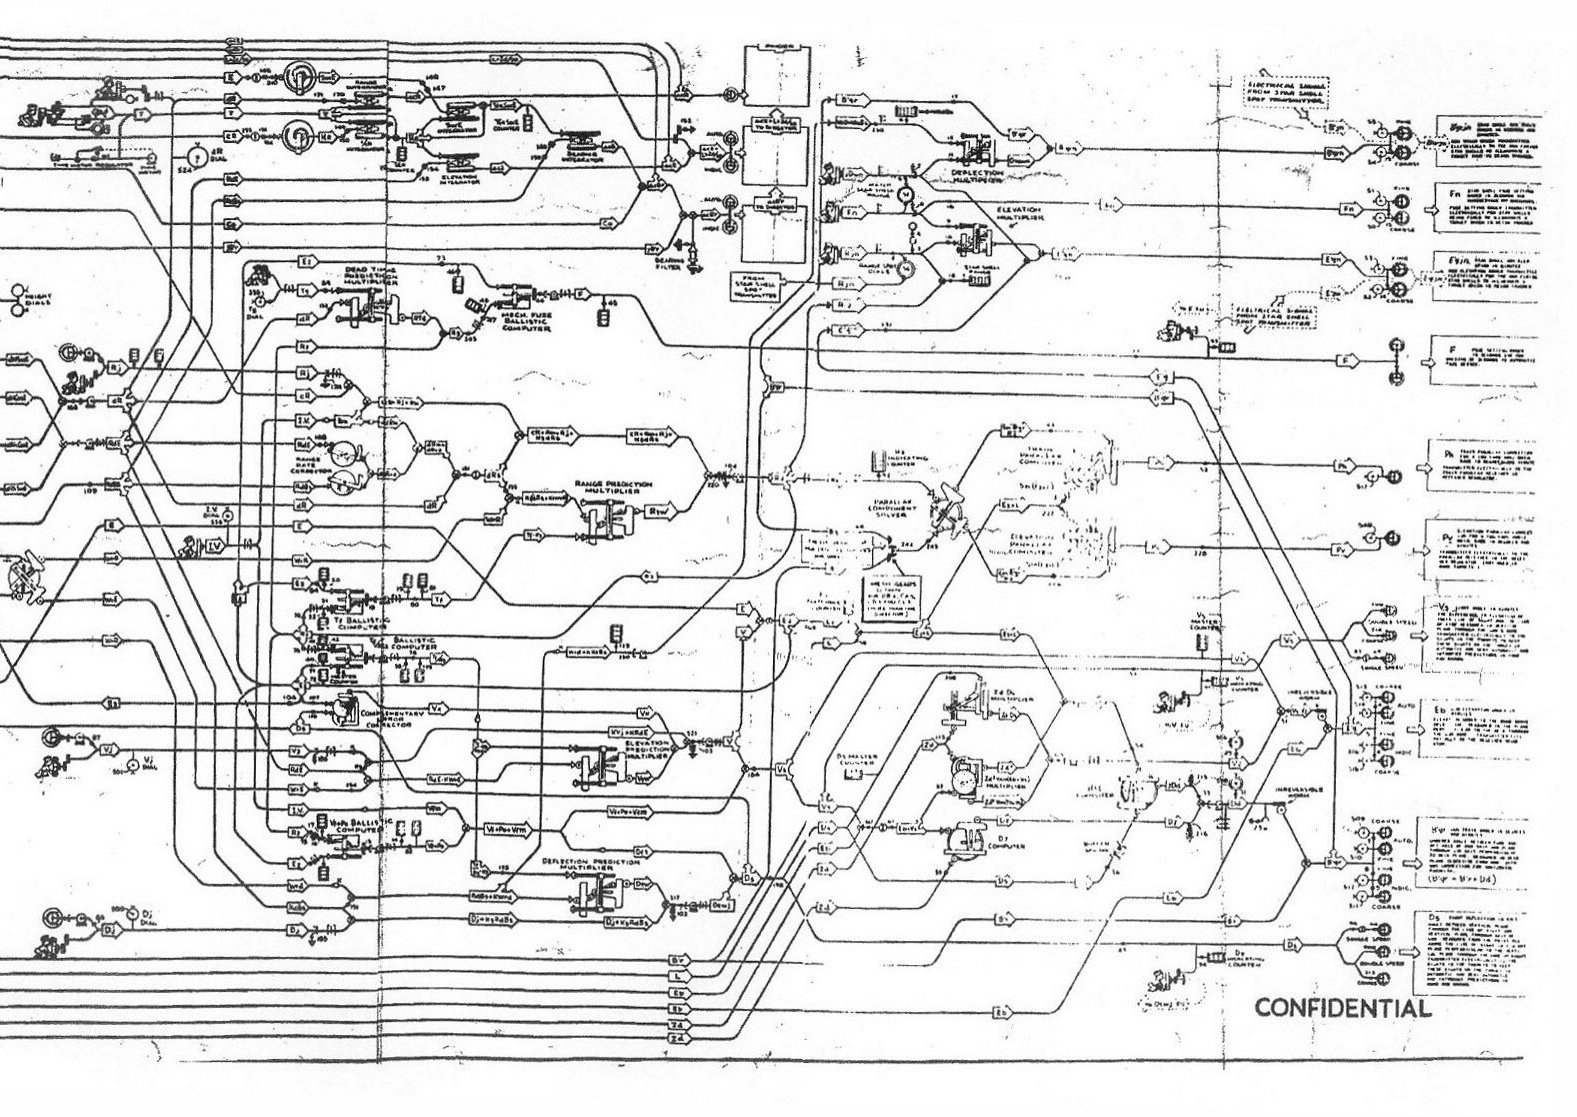 Computer Circuit Diagram 24 Wiring Images Rc Reset Powersupplycircuit Flow Schematic Mk 1 Mod 7 3 1mod